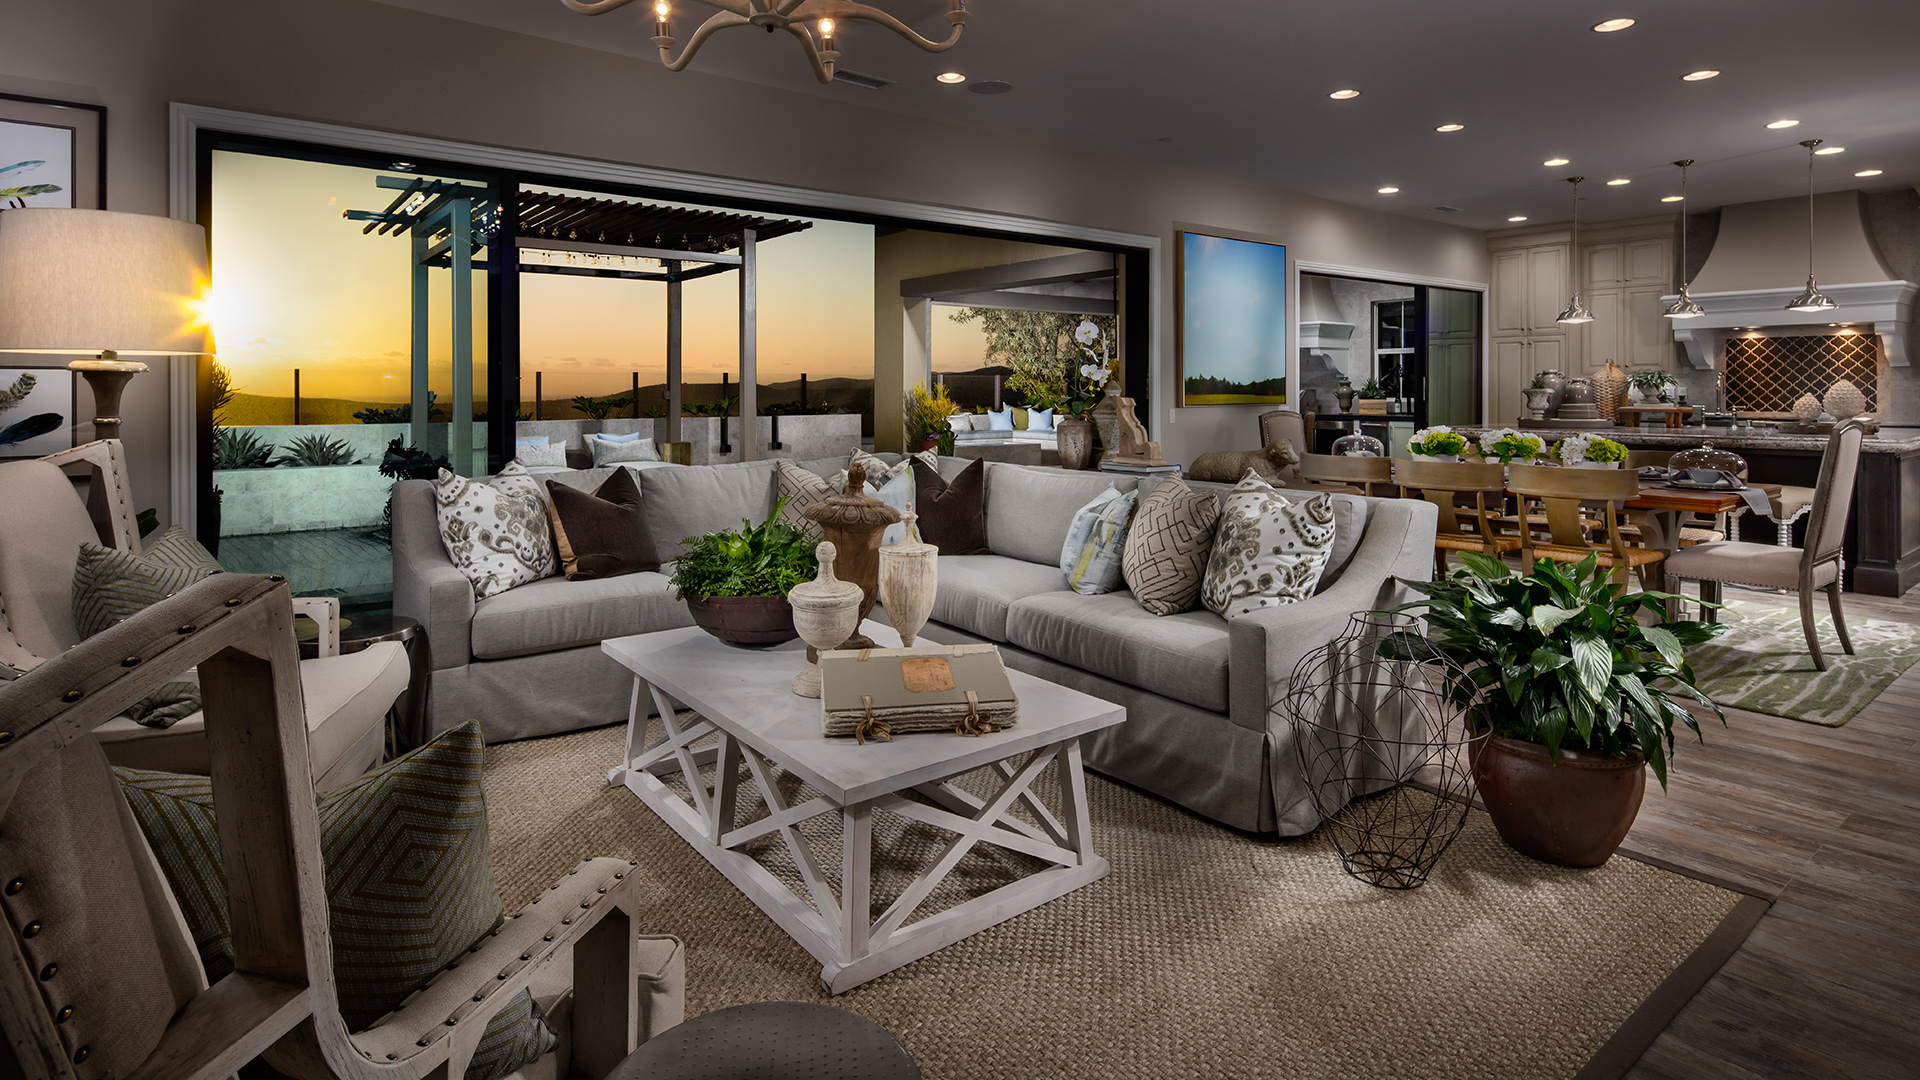 Open floor plans offer great space for hosting friends and family.